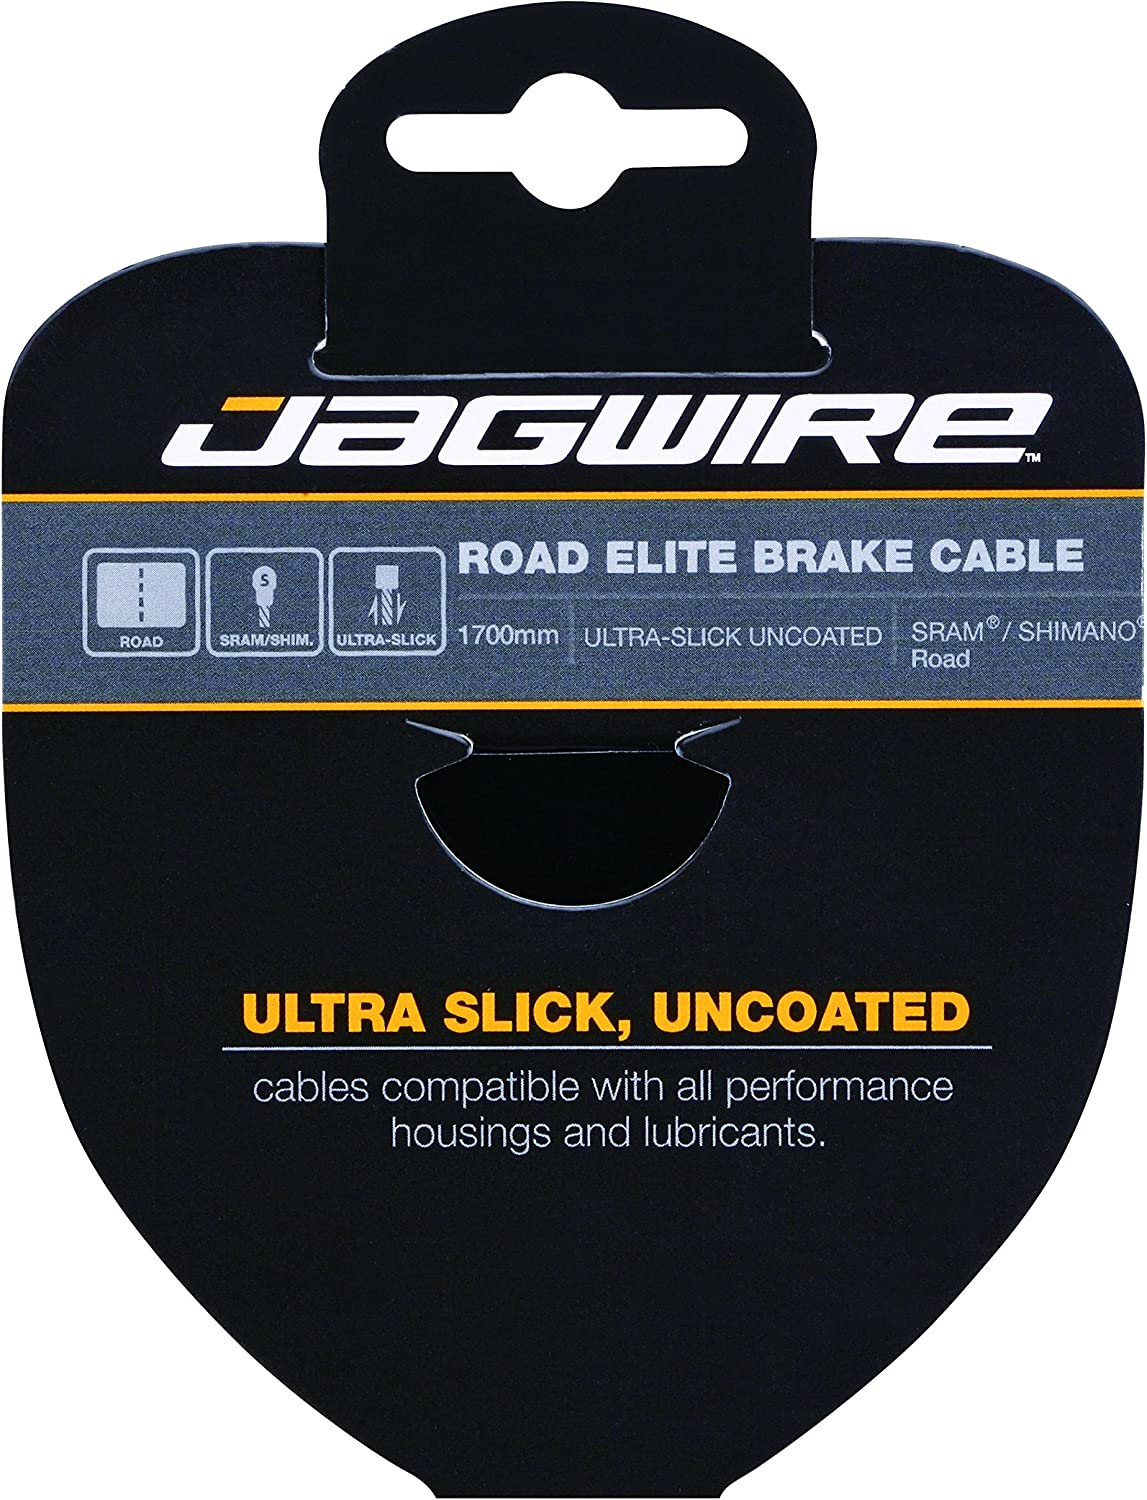 Jagwire Road Elite Link Brake Cable Kit SRAM//Shimano Ultra-Slick Uncoated Cables